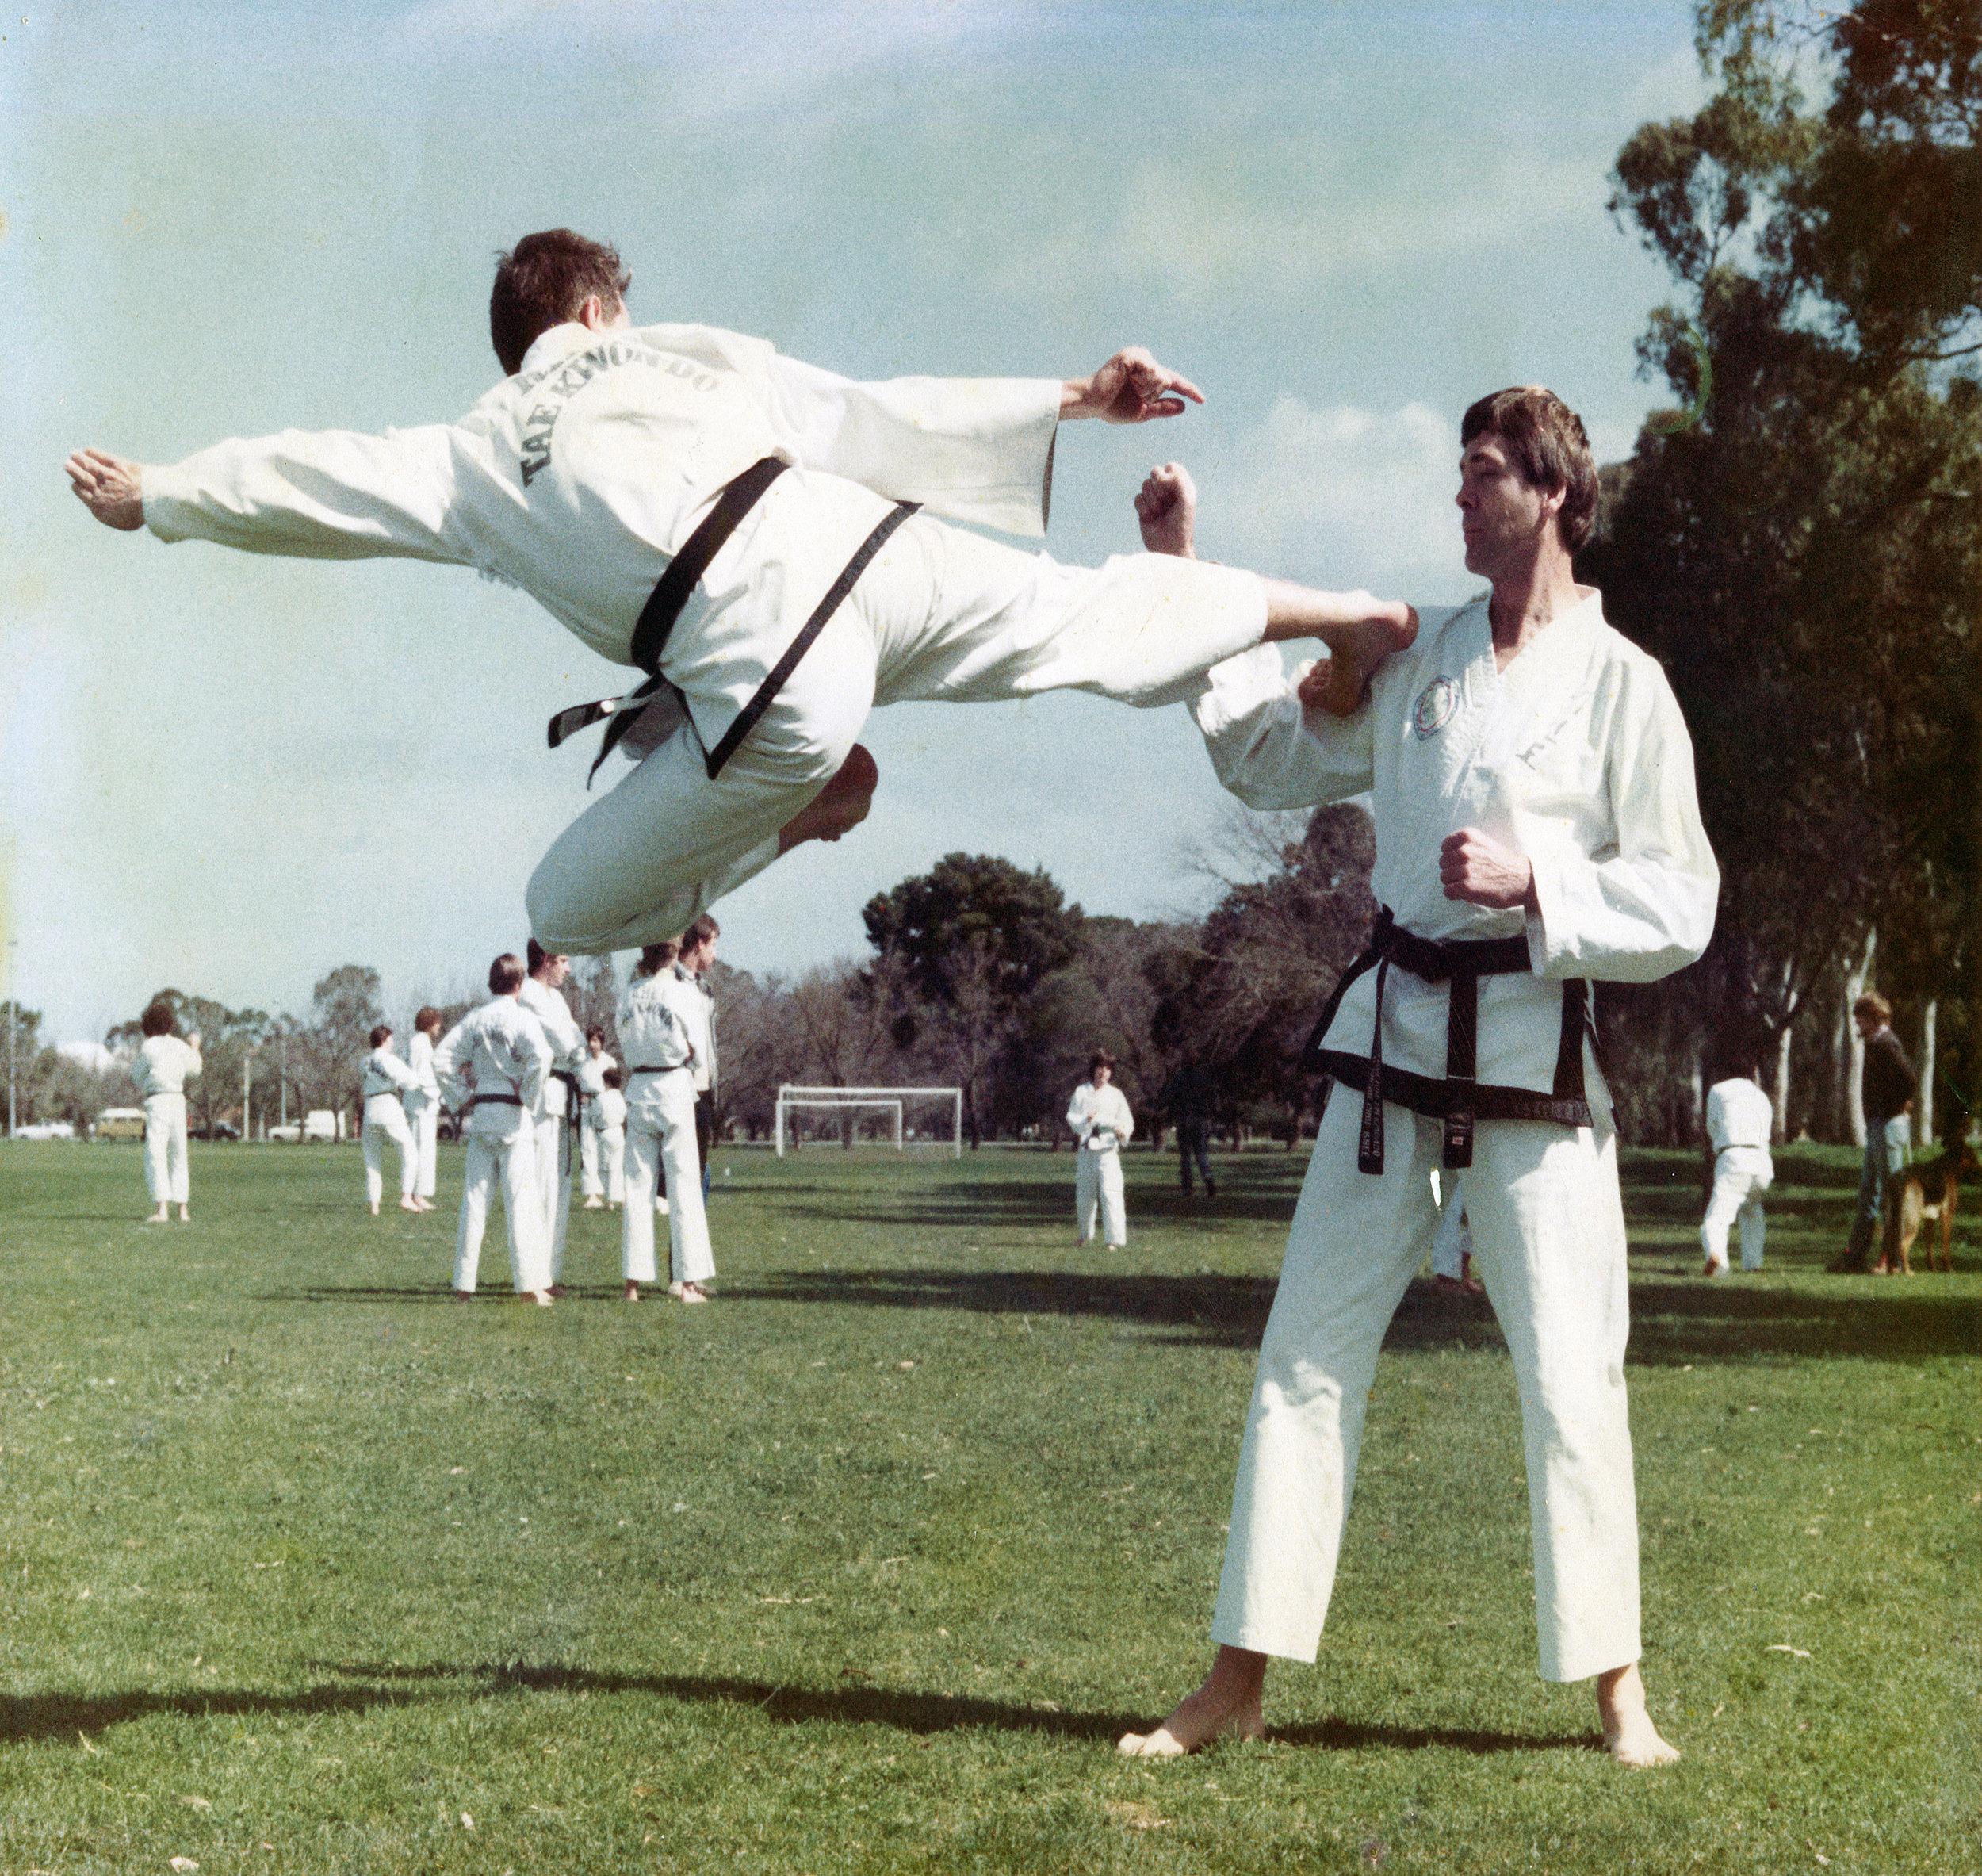 That's me performing a flying side-kick 1983